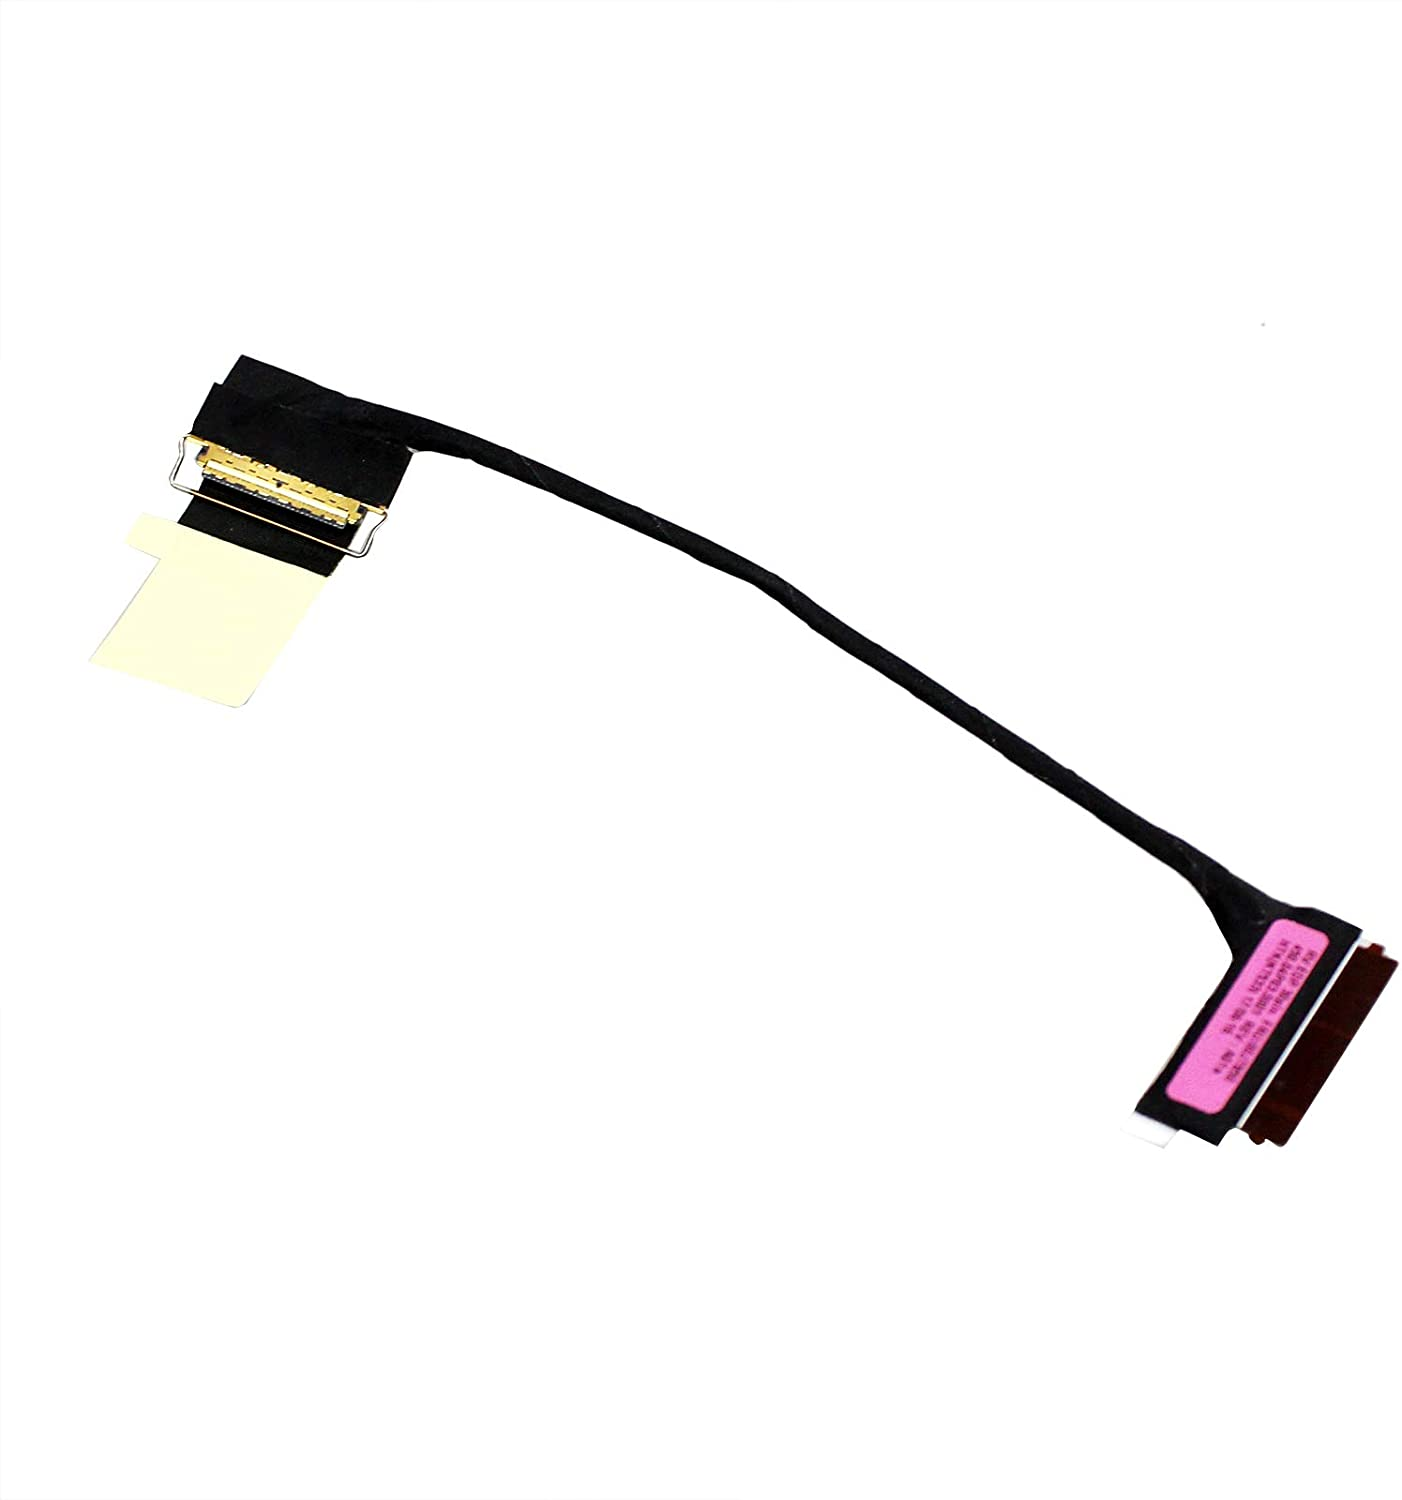 Zahara LED LVDS LCD Display Screen Cable Replacement for Lenovo Thinkpad X1 Yoga 00JT850 19201080